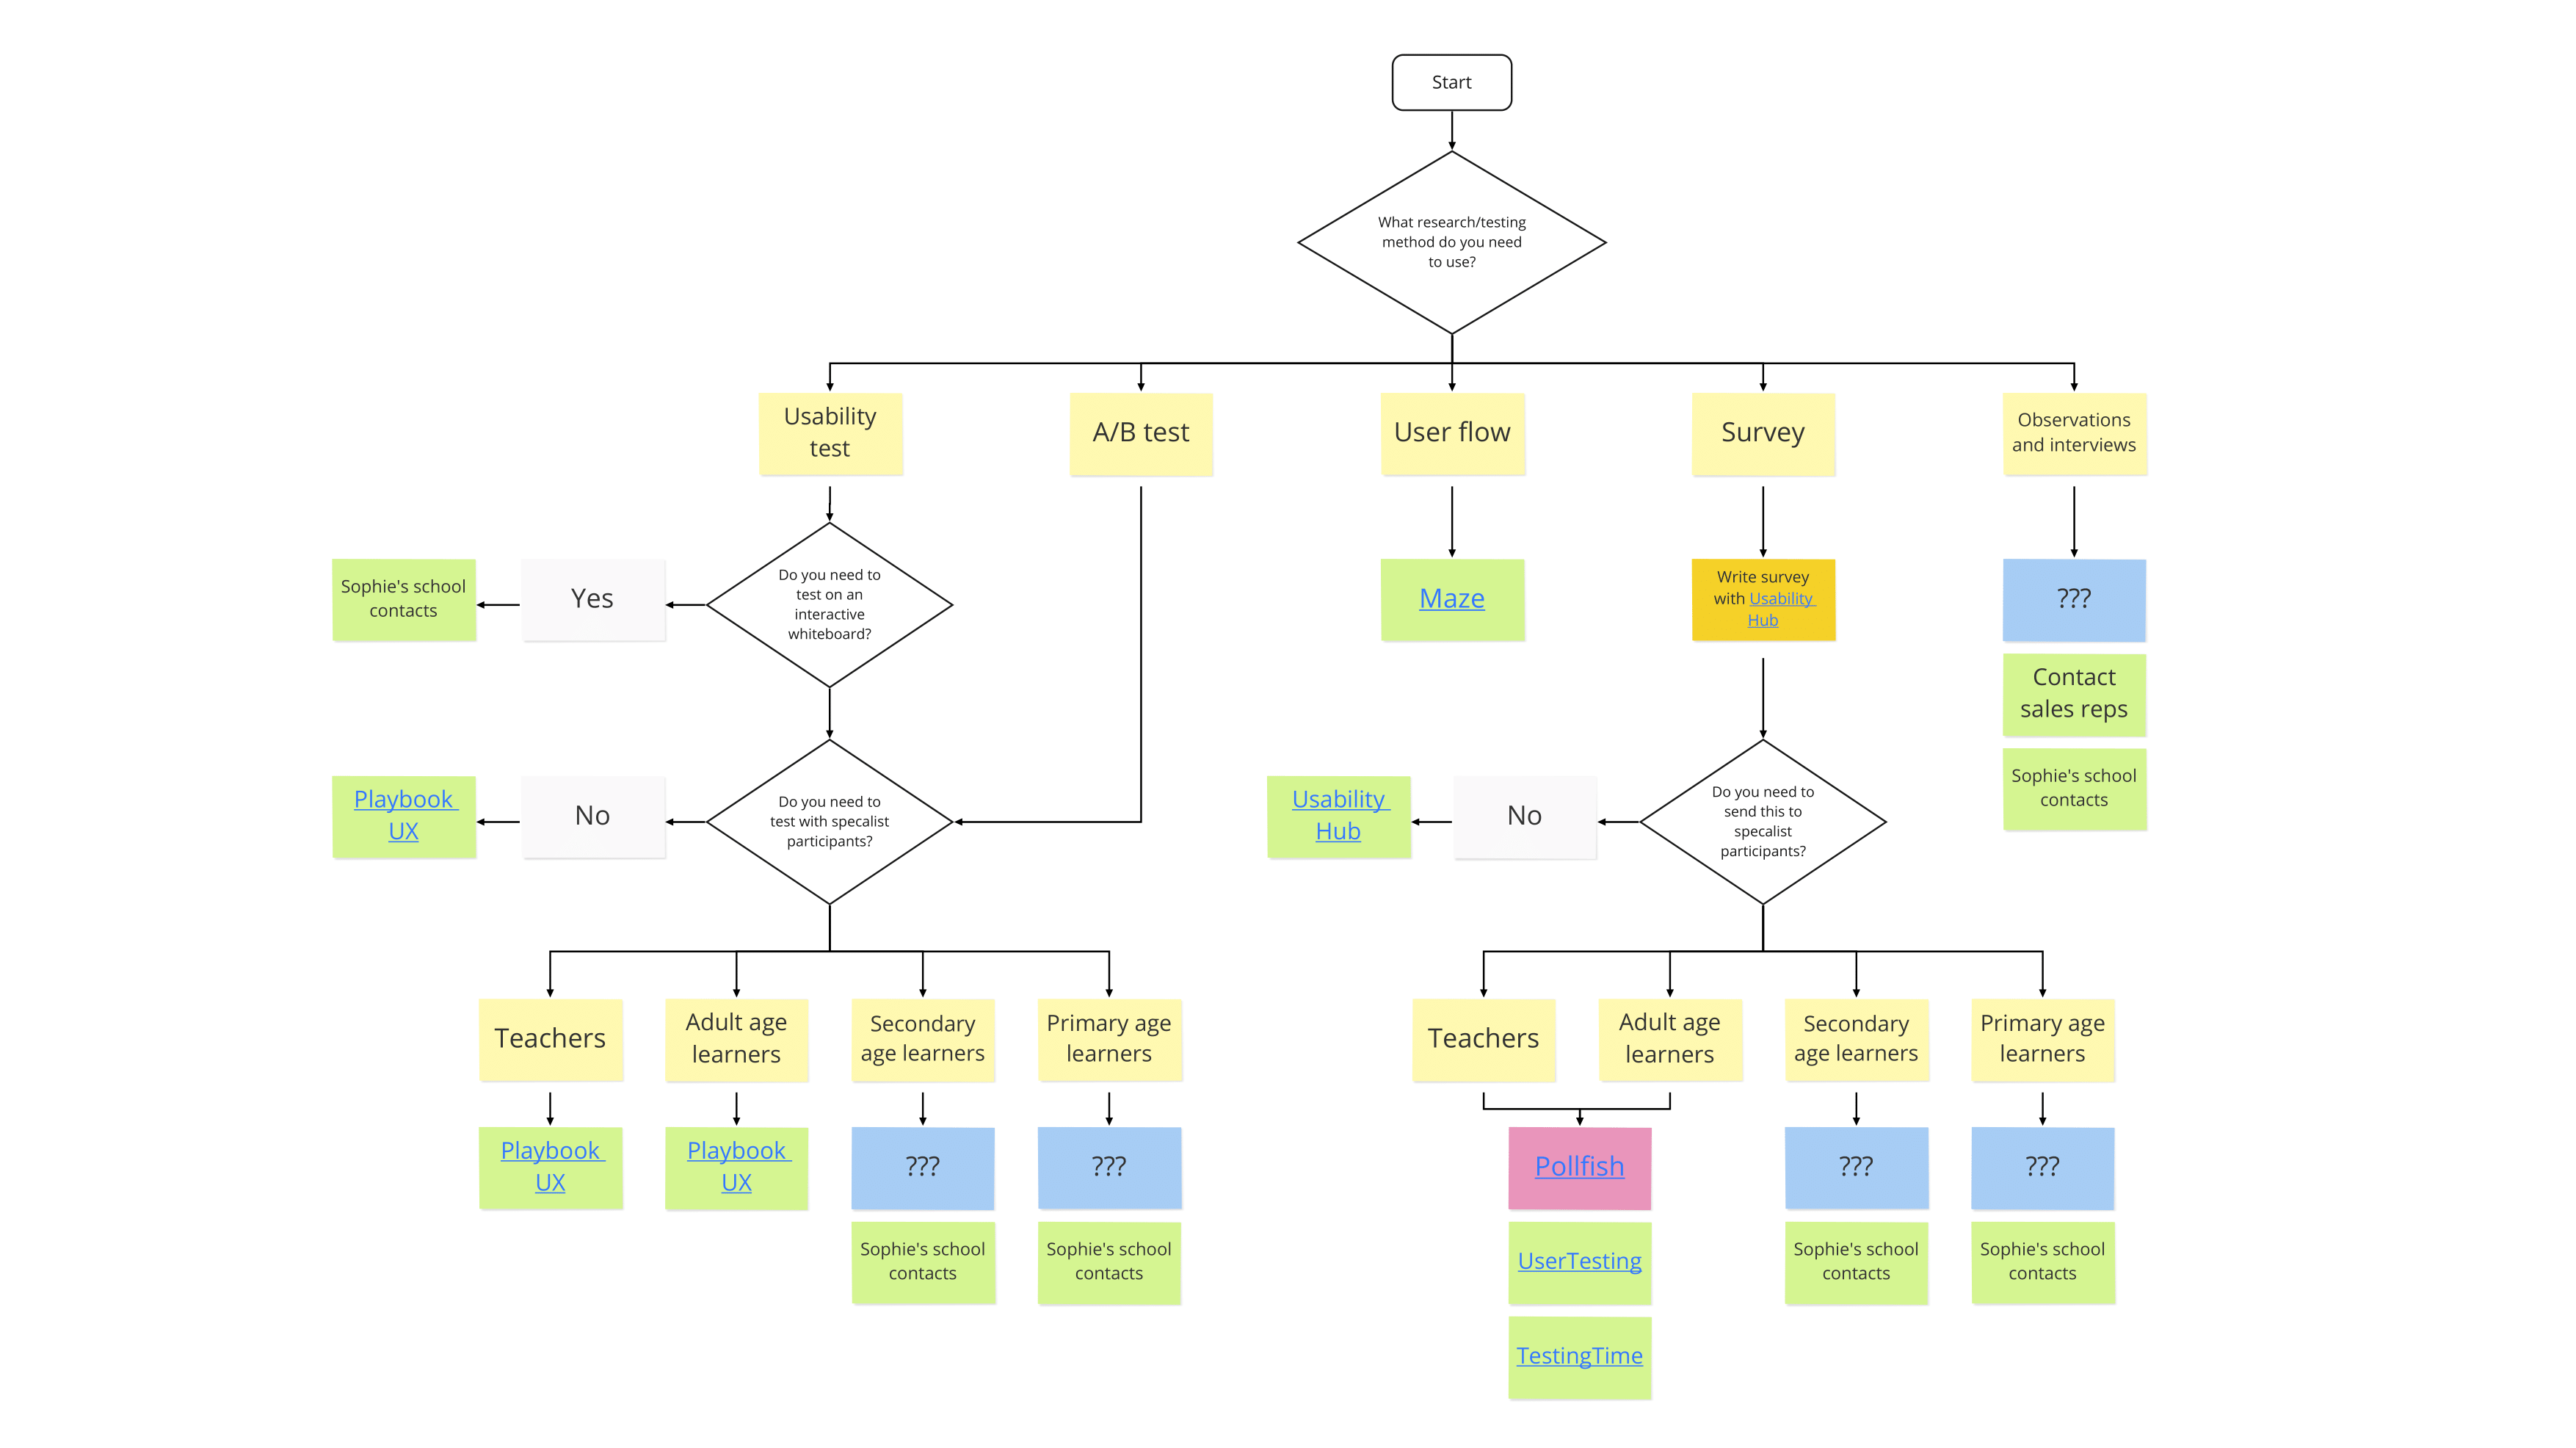 Flowchart showing testing process for Cambridge One.